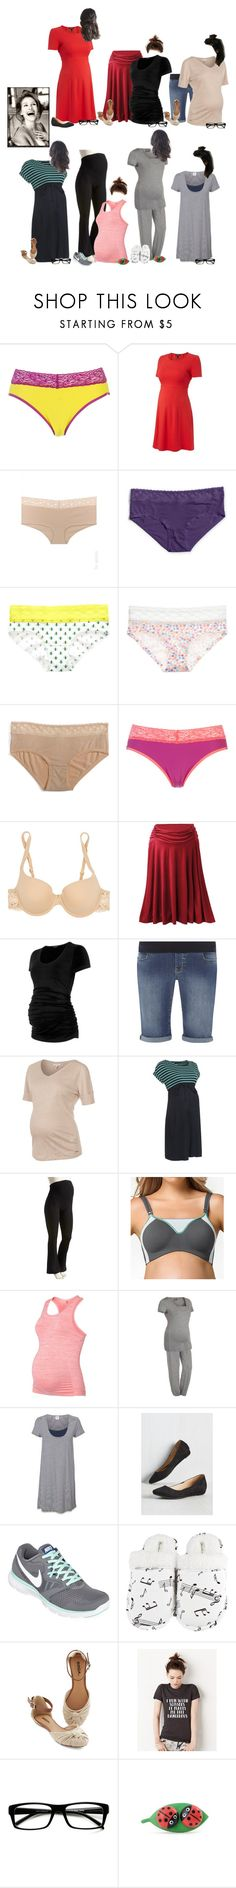 """""""Tay This Week"""" by thesummitfam ❤ liked on Polyvore featuring ExOfficio, Felina, Victoria's Secret, La Perla, Dorothy Perkins, ESPRIT, Old Navy, Cake Lingerie, NIKE and Leisureland"""